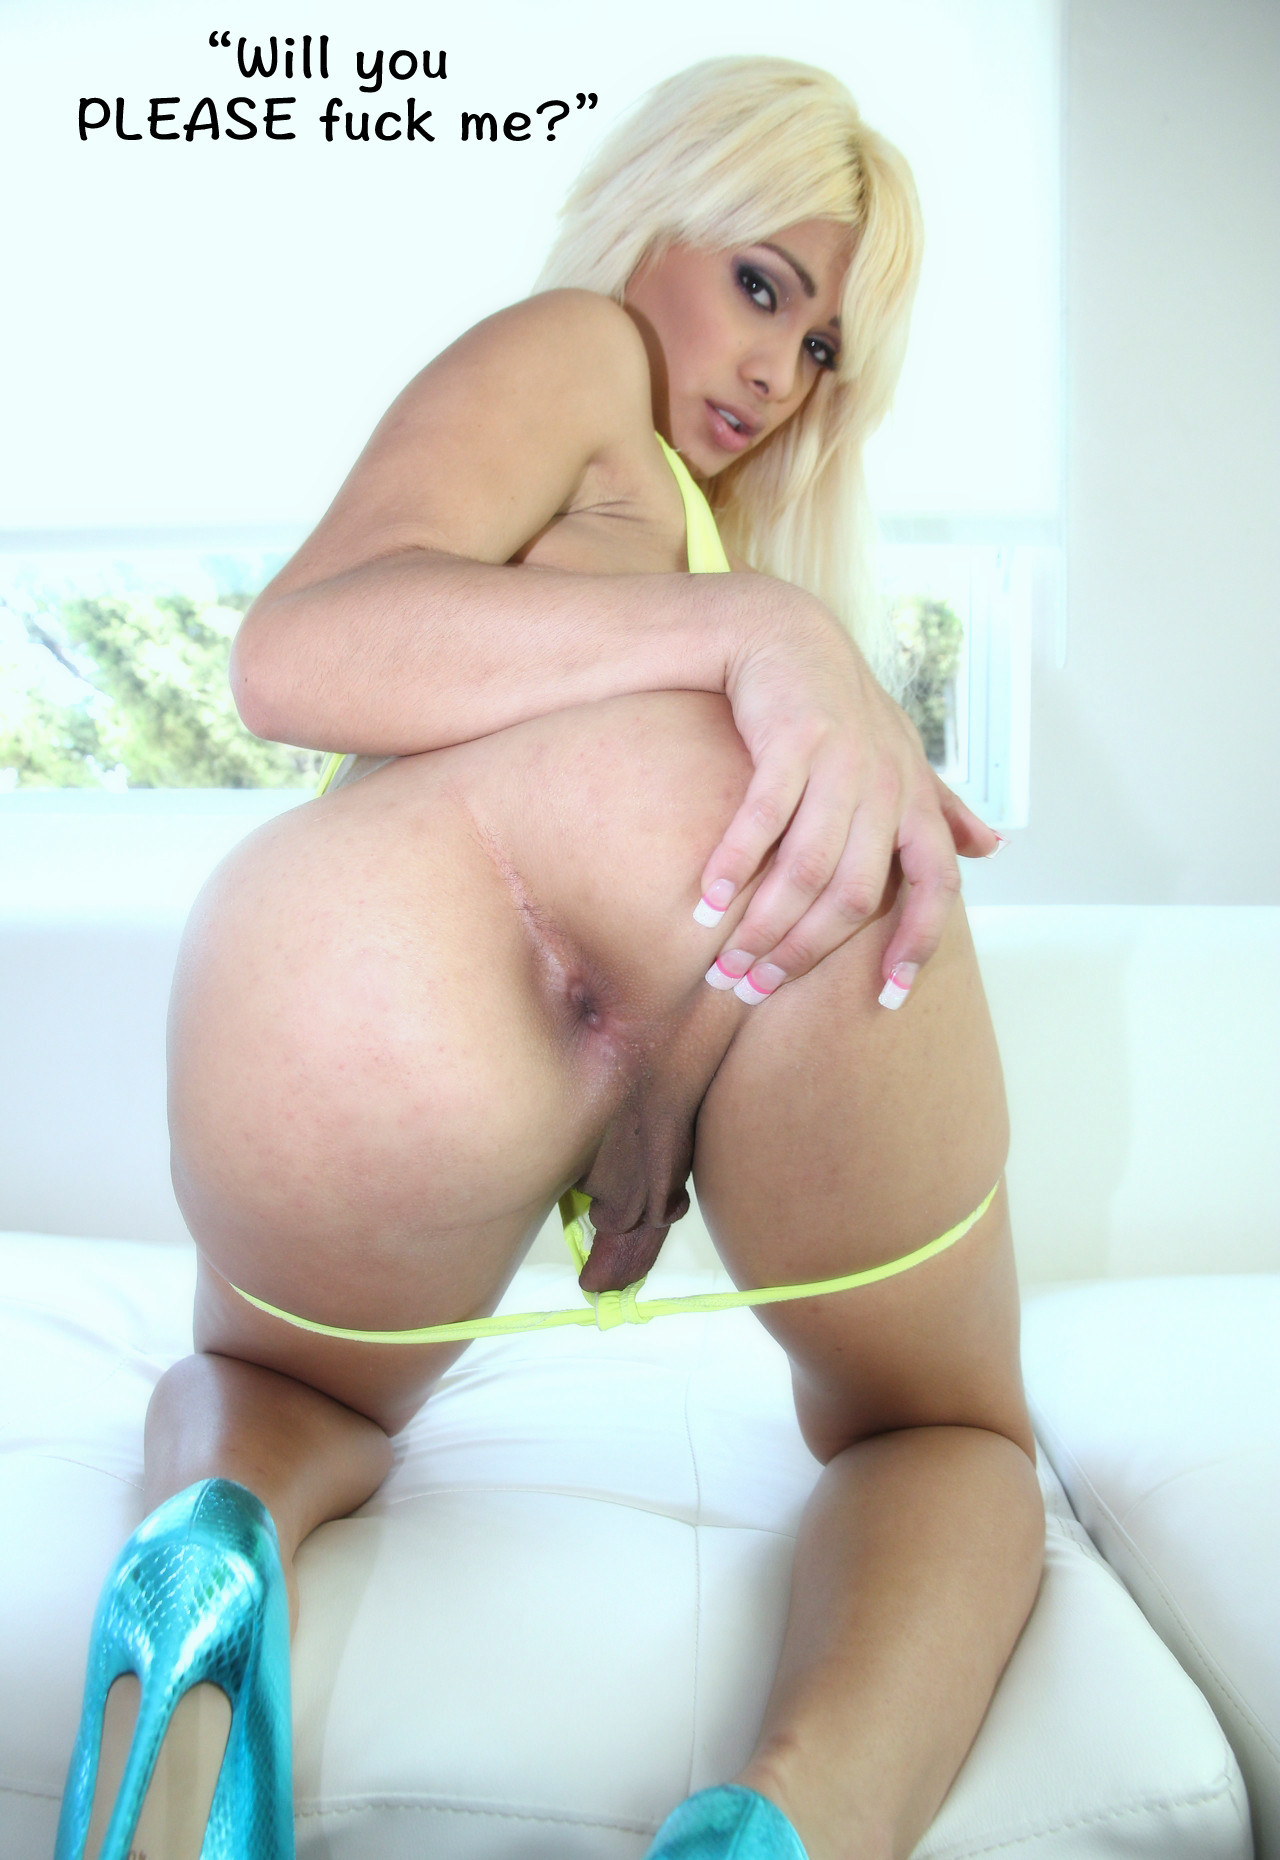 Extreme Shemale Anal Captions - Shemale Ass / Tranny Buttholes